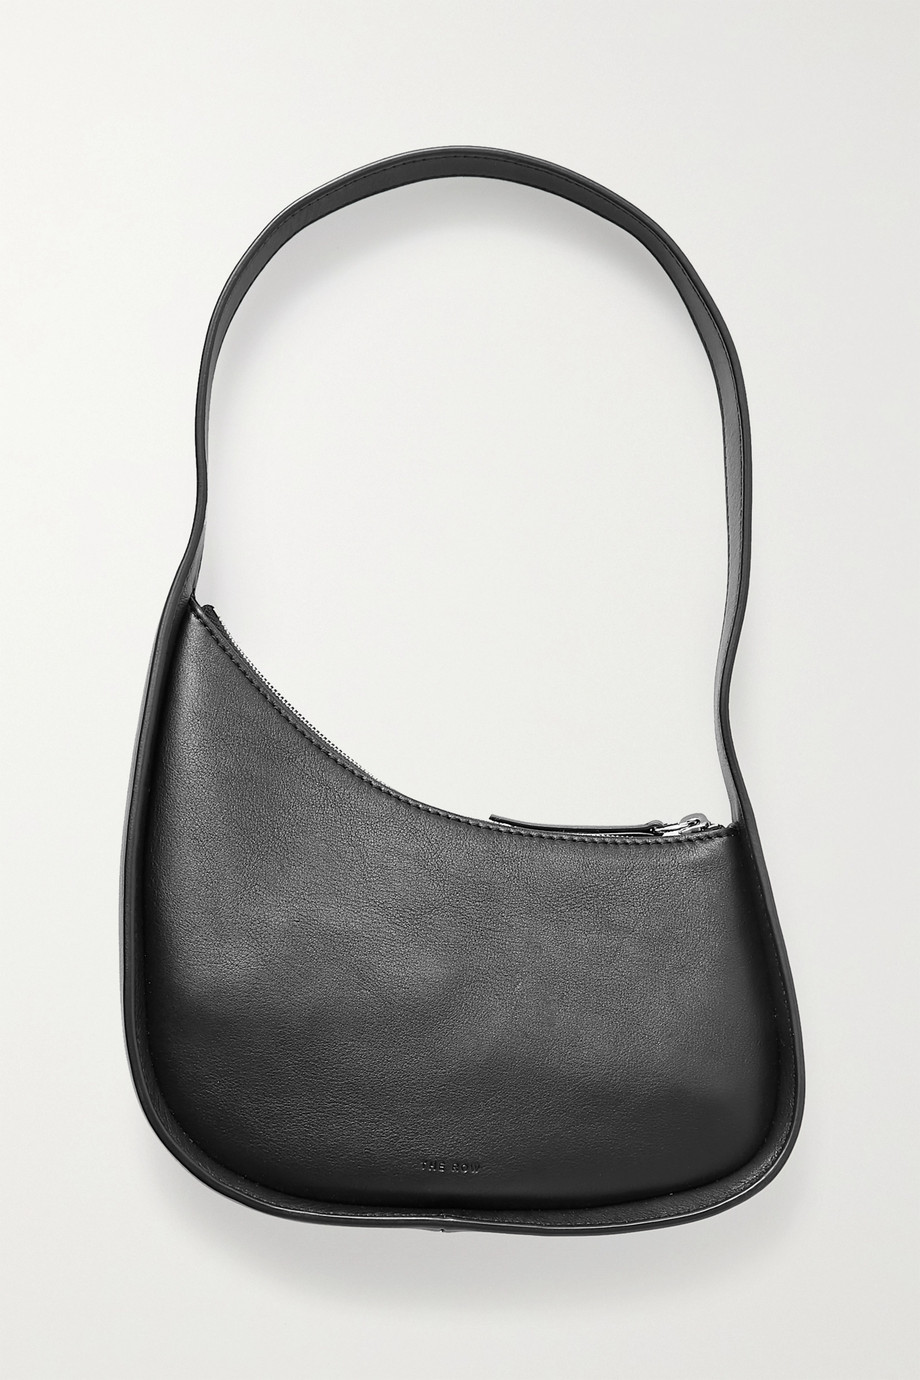 The Row Half Moon leather shoulder bag